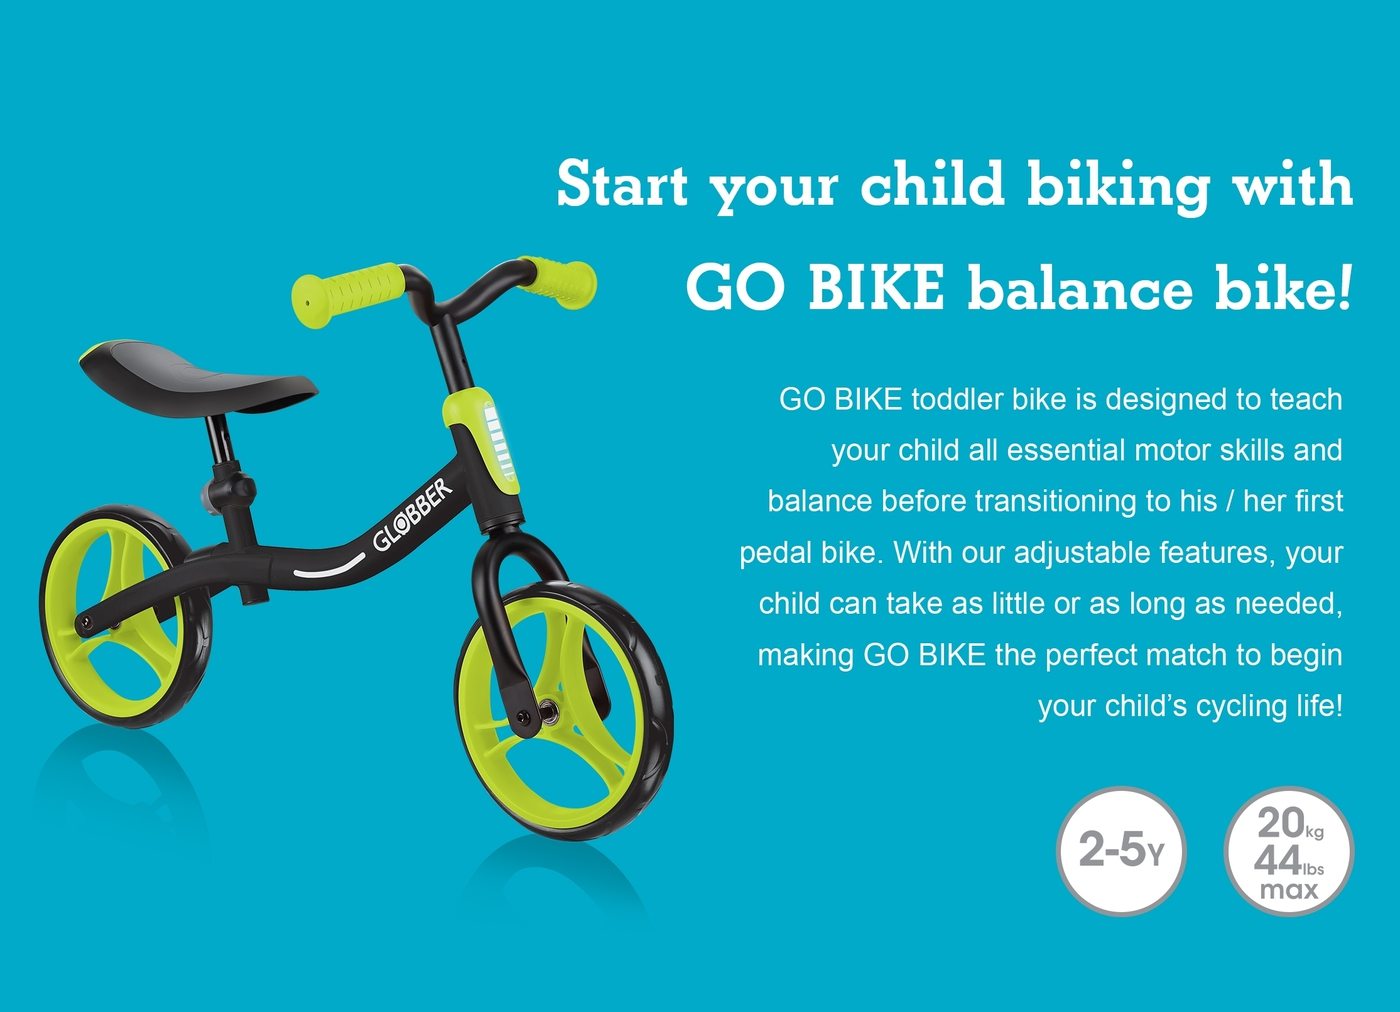 GO BIKE toddler bike teaches your child all essential motor skills